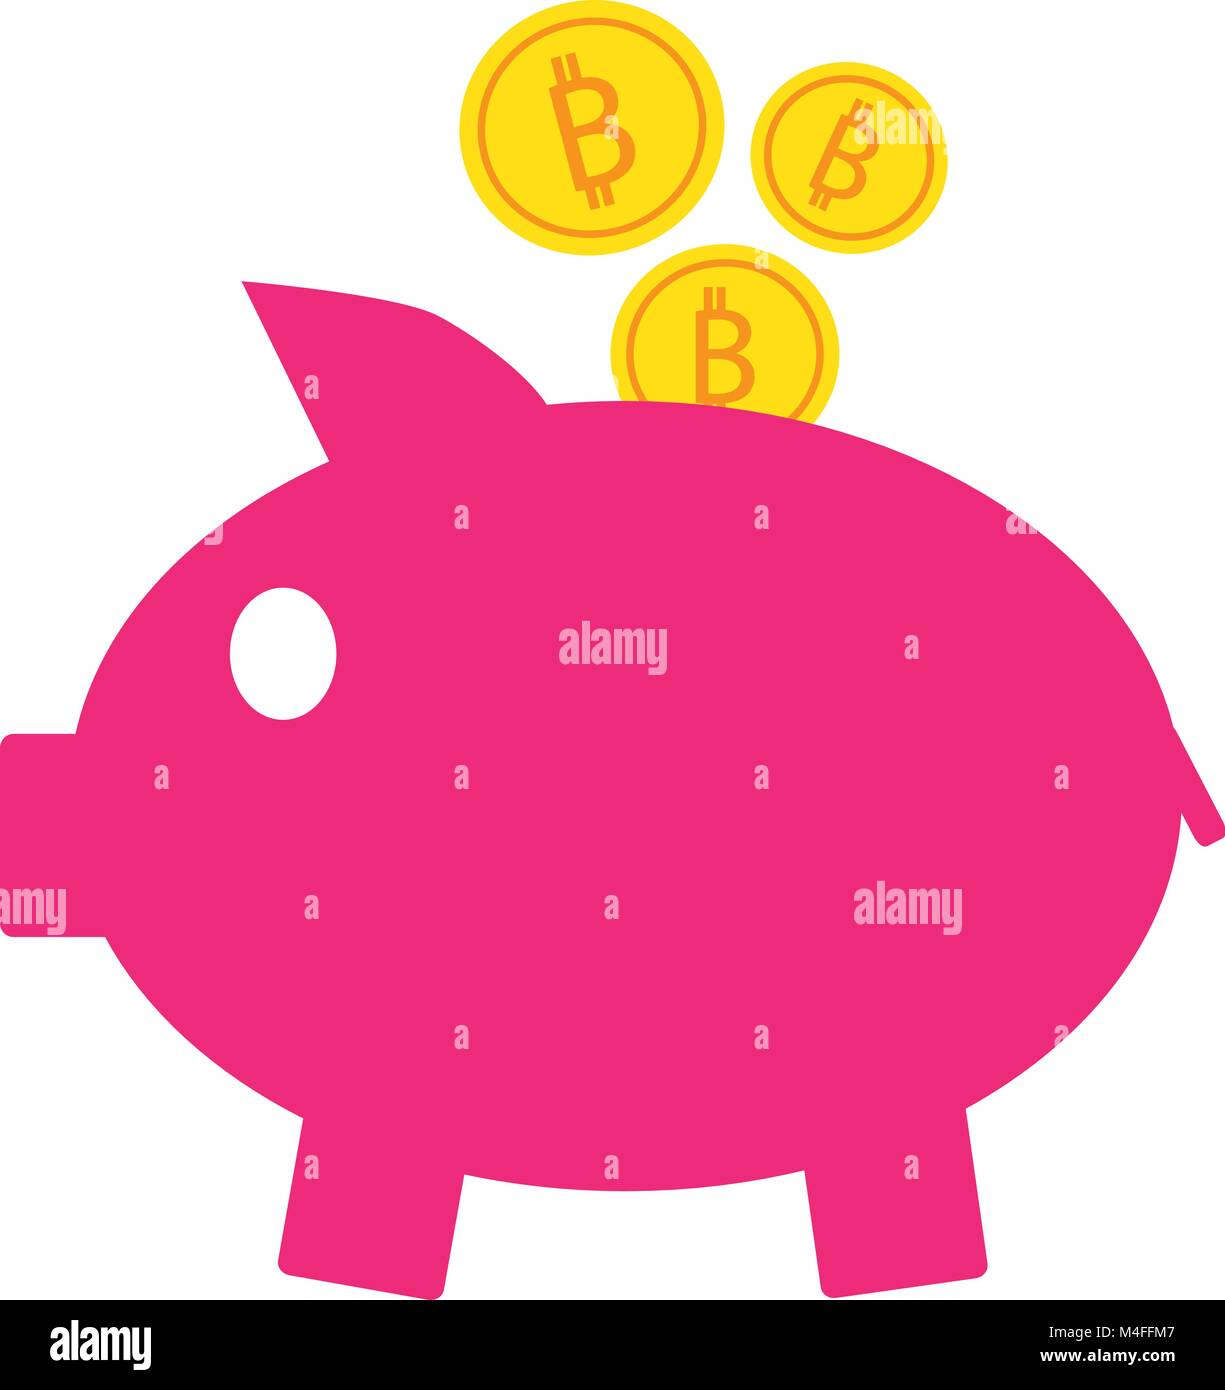 Bitcoin crypto currency icon or vector logo on coins and a piggy bitcoin crypto currency icon or vector logo on coins and a piggy bank symbol for bank or banking on a digital economy with virtual cash and currencie biocorpaavc Gallery